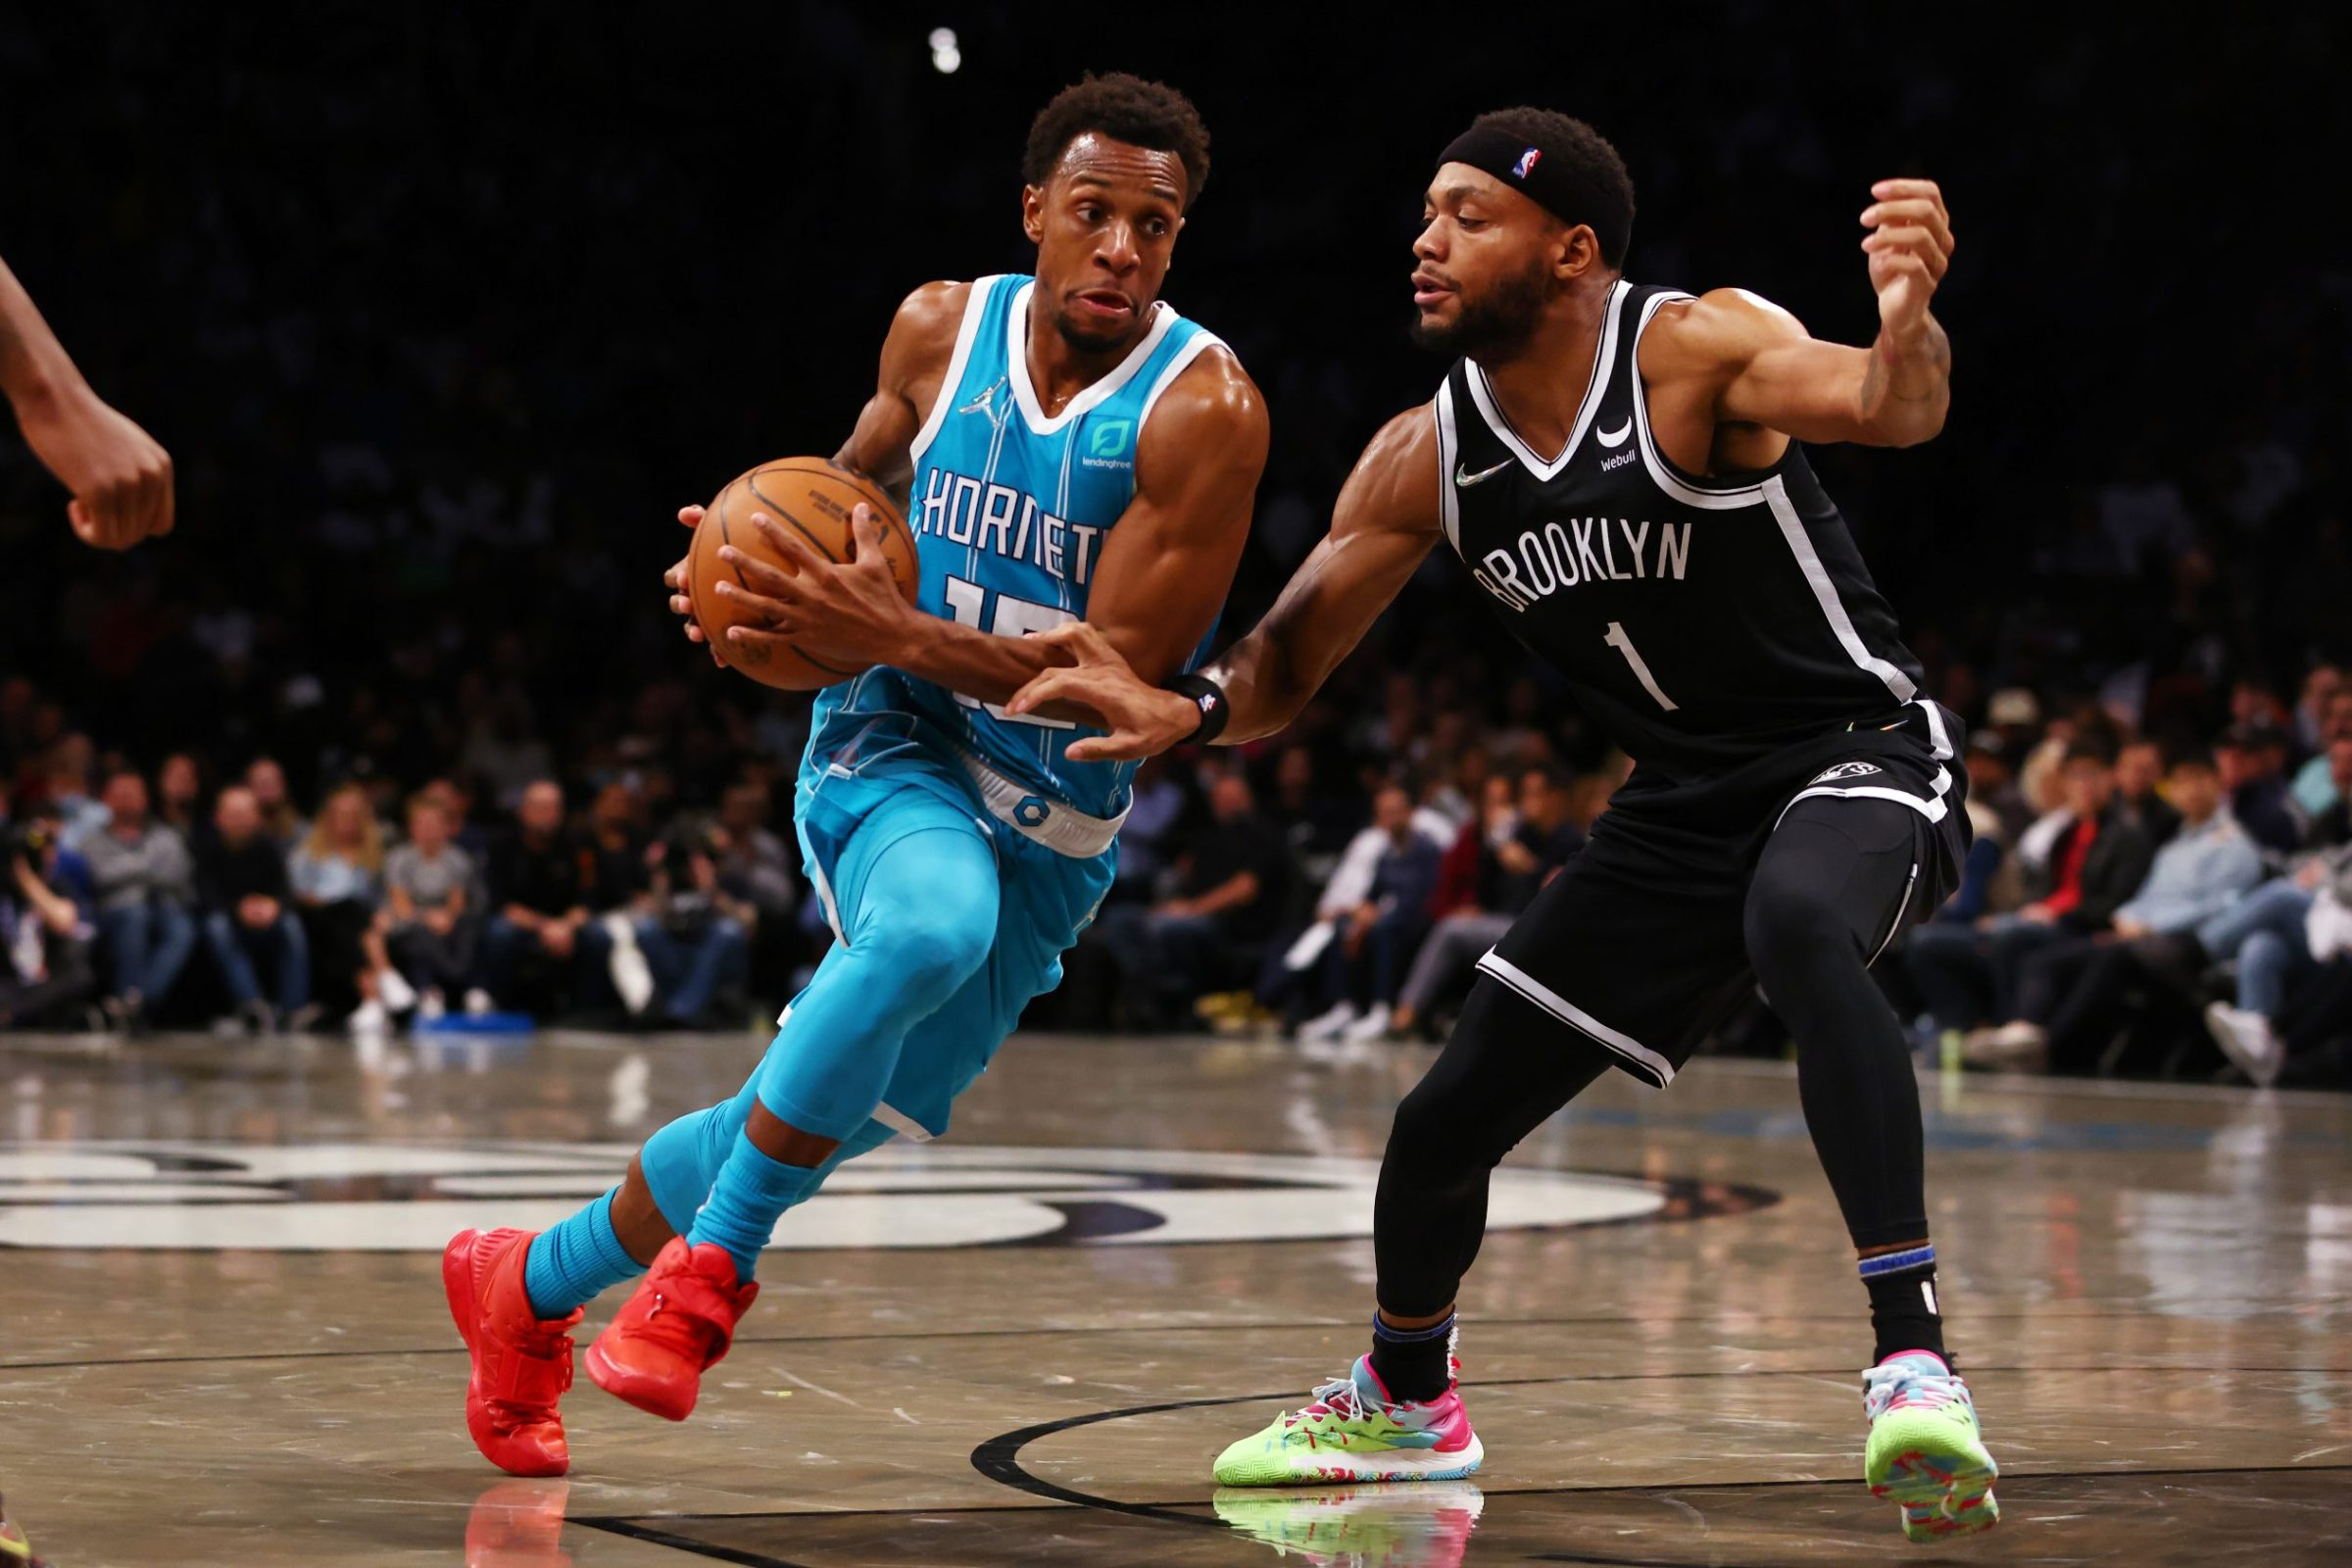 Ish Smith #10 of the Charlotte Hornets in action against Bruce Brown #1 of the Brooklyn Nets during a game at Barclays Center on October 24, 2021 in New York City.